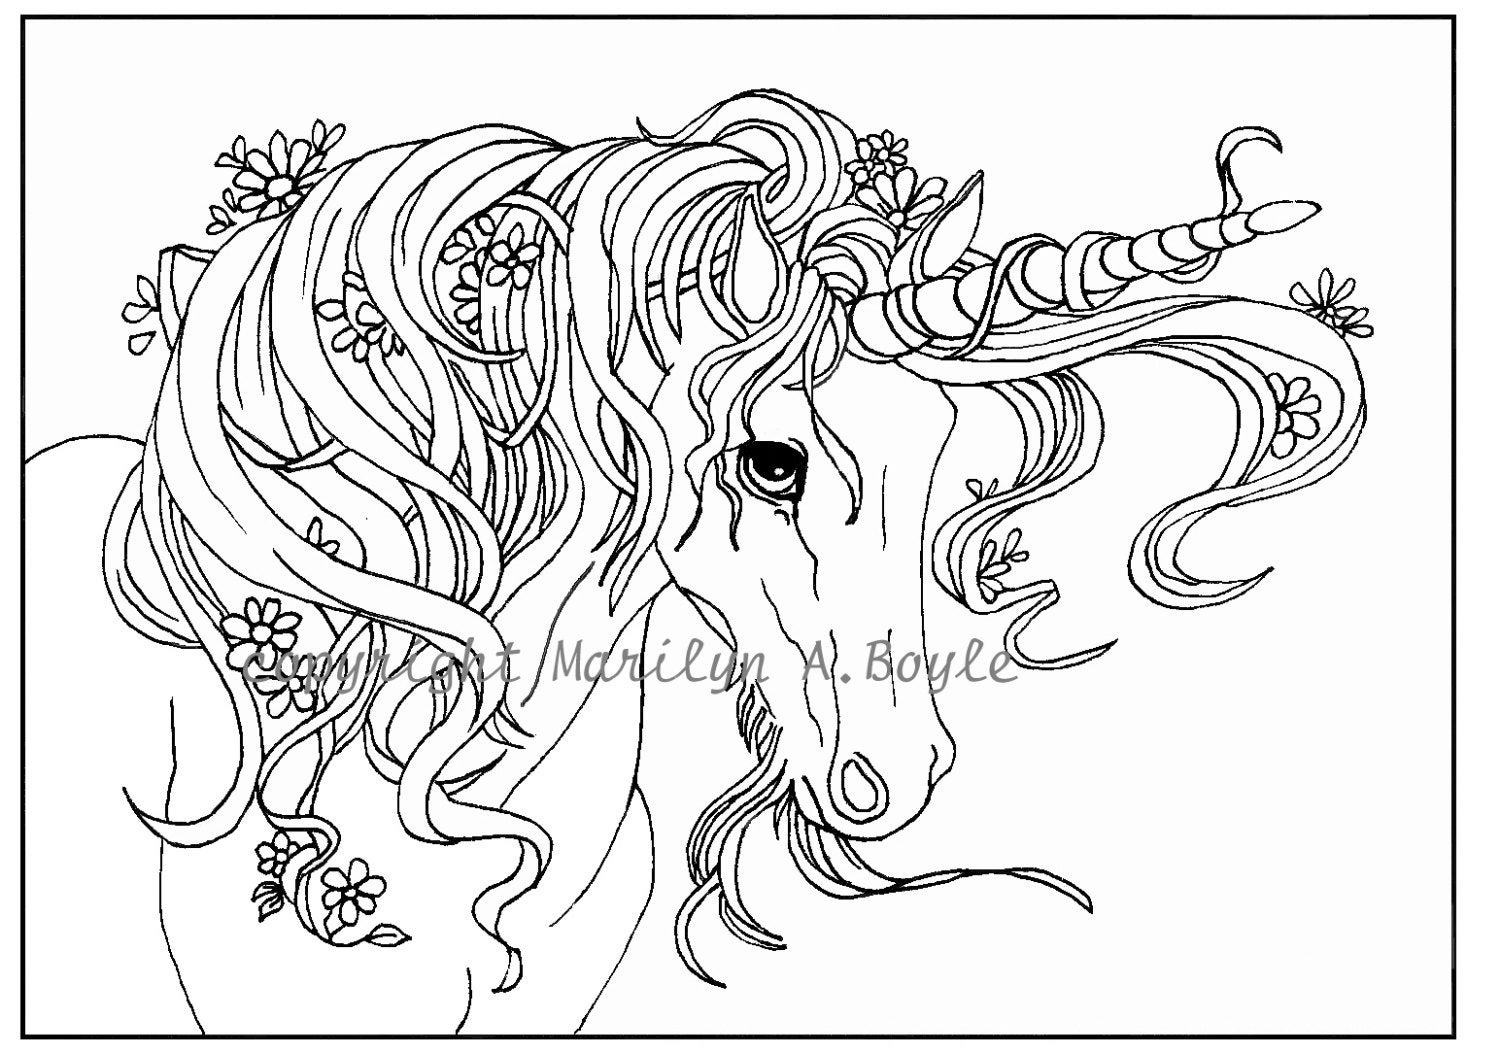 coloring pages for adults unicorn get this free printable unicorn coloring pages for adults for pages unicorn coloring adults 1 1